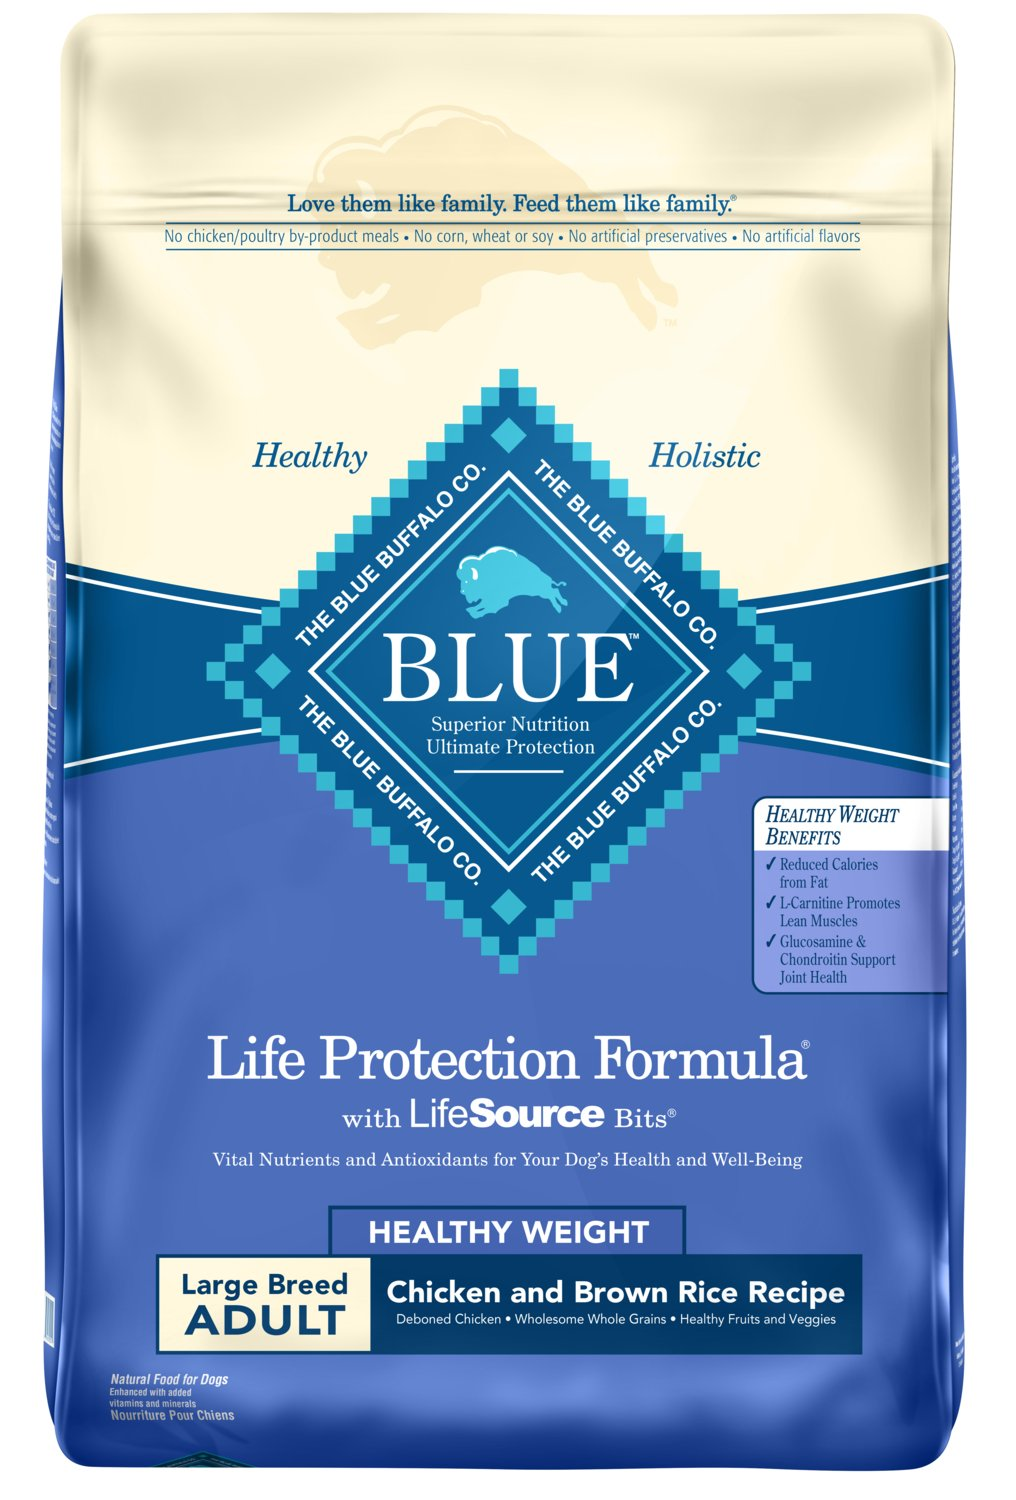 Blue Buffalo Life Protection Formula Healthy Weight Large Breed Dog Food - Natural Dry Dog Food for Adult Dogs - Chicken and Brown Rice - 30 lb. Bag by Blue Buffalo